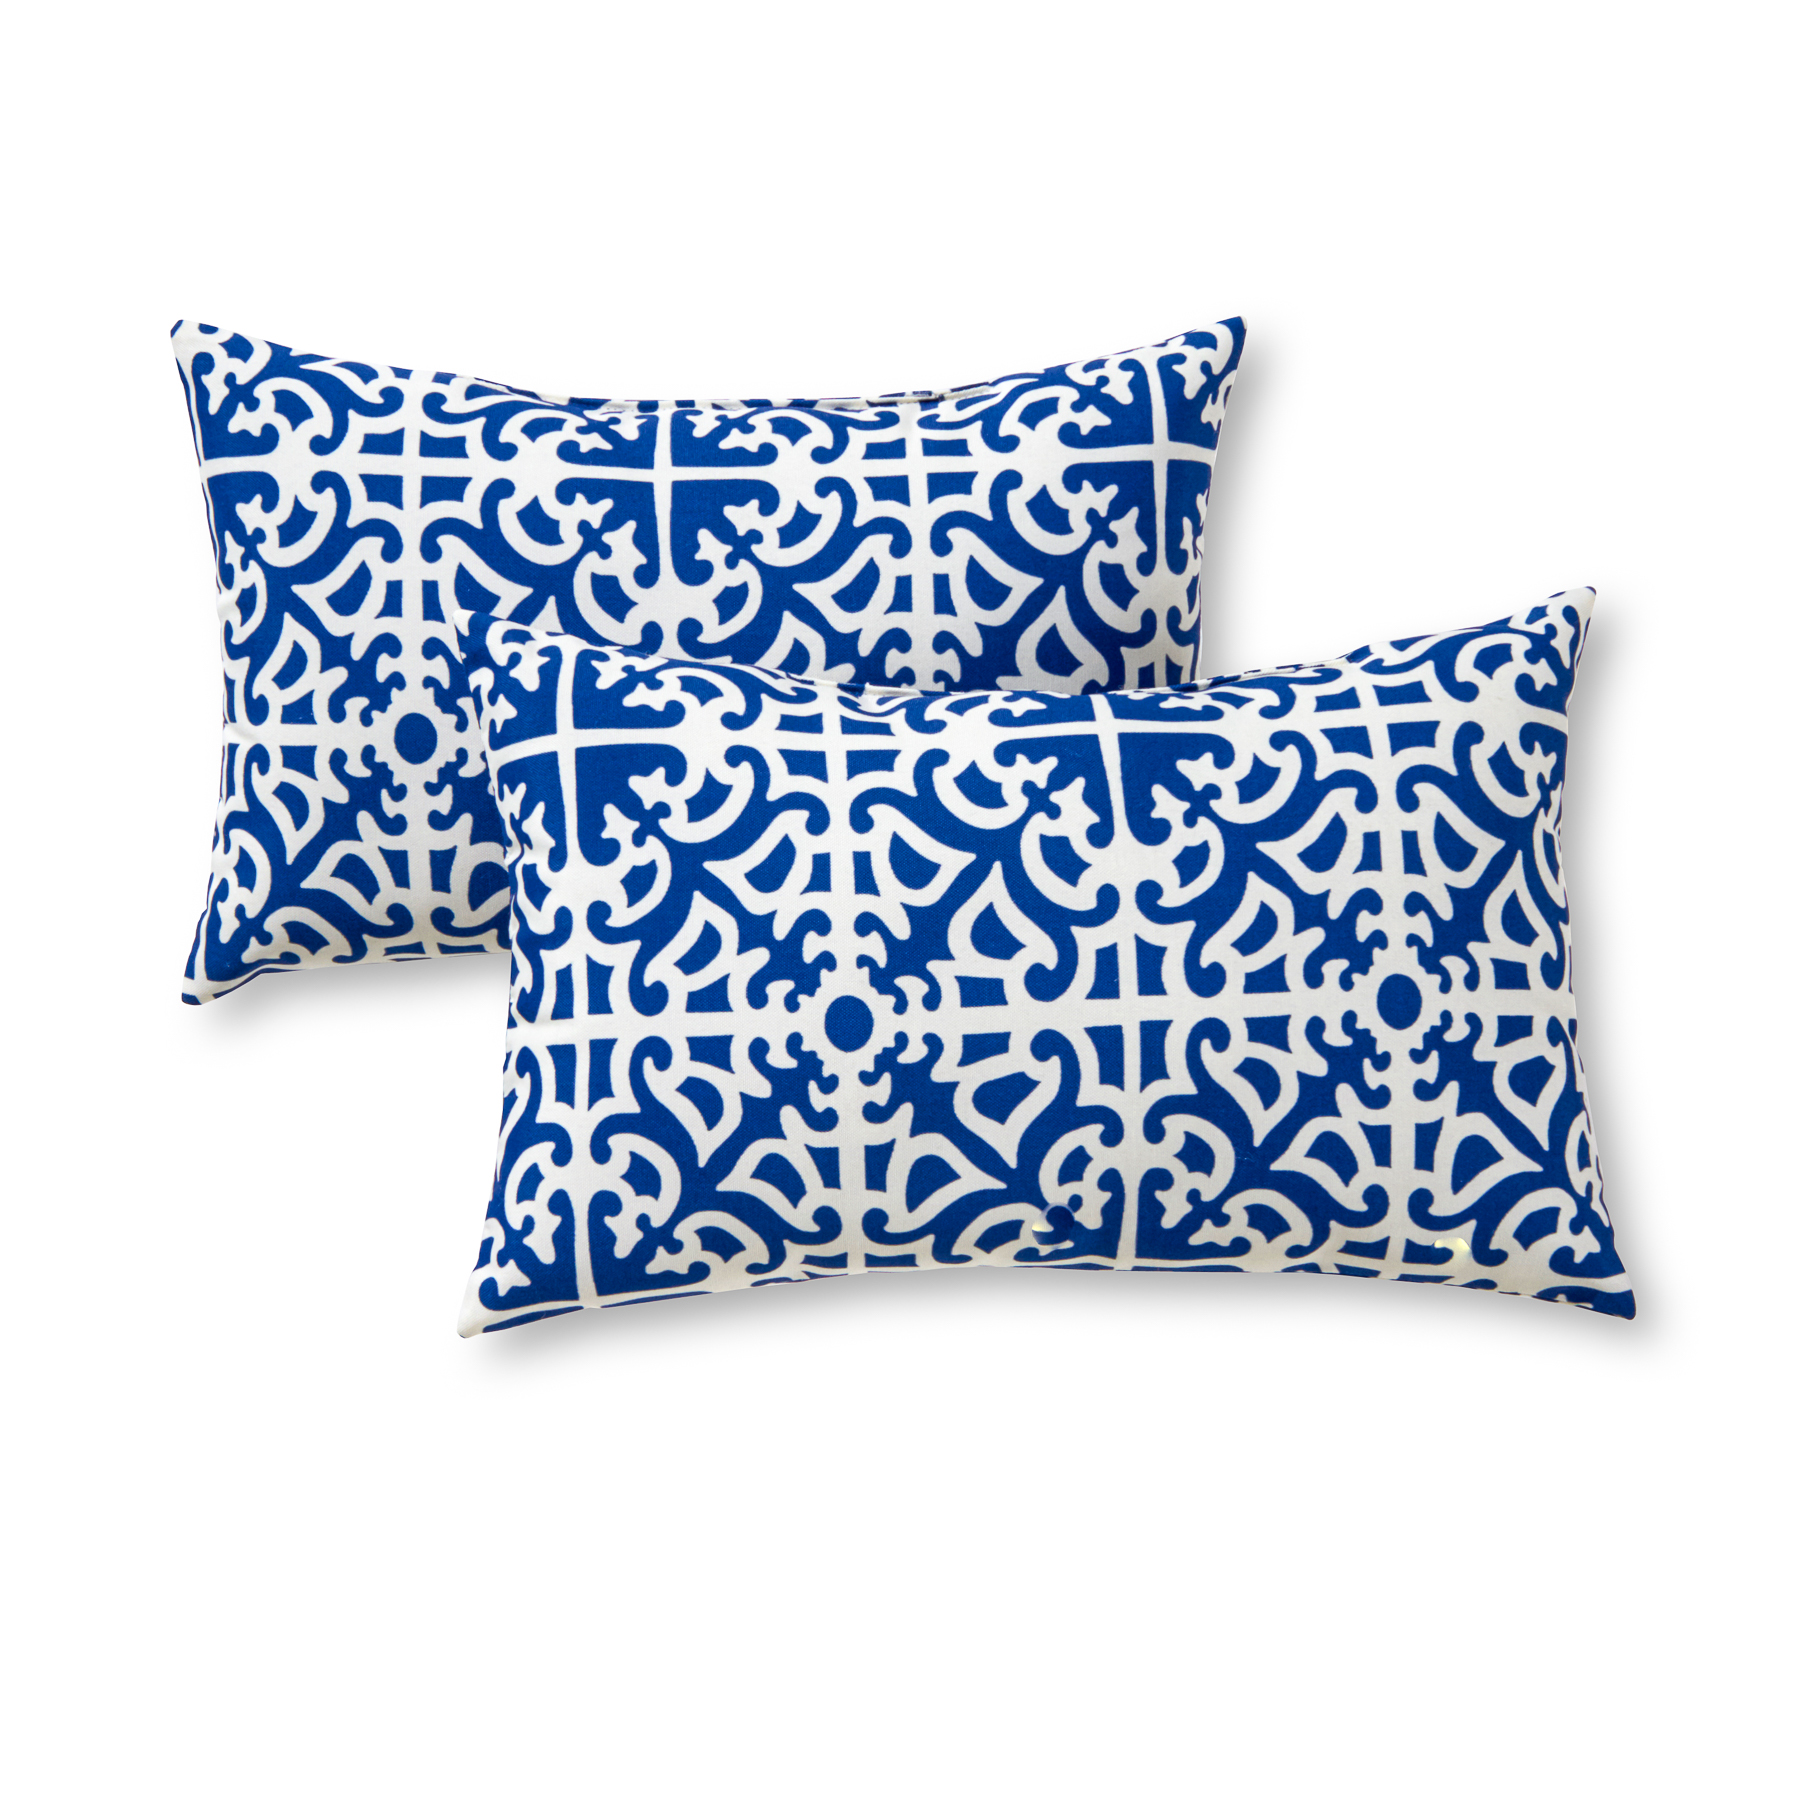 Greendale Home Fashions Lattice Rectangle Outdoor Accent Pillow, Set of 2